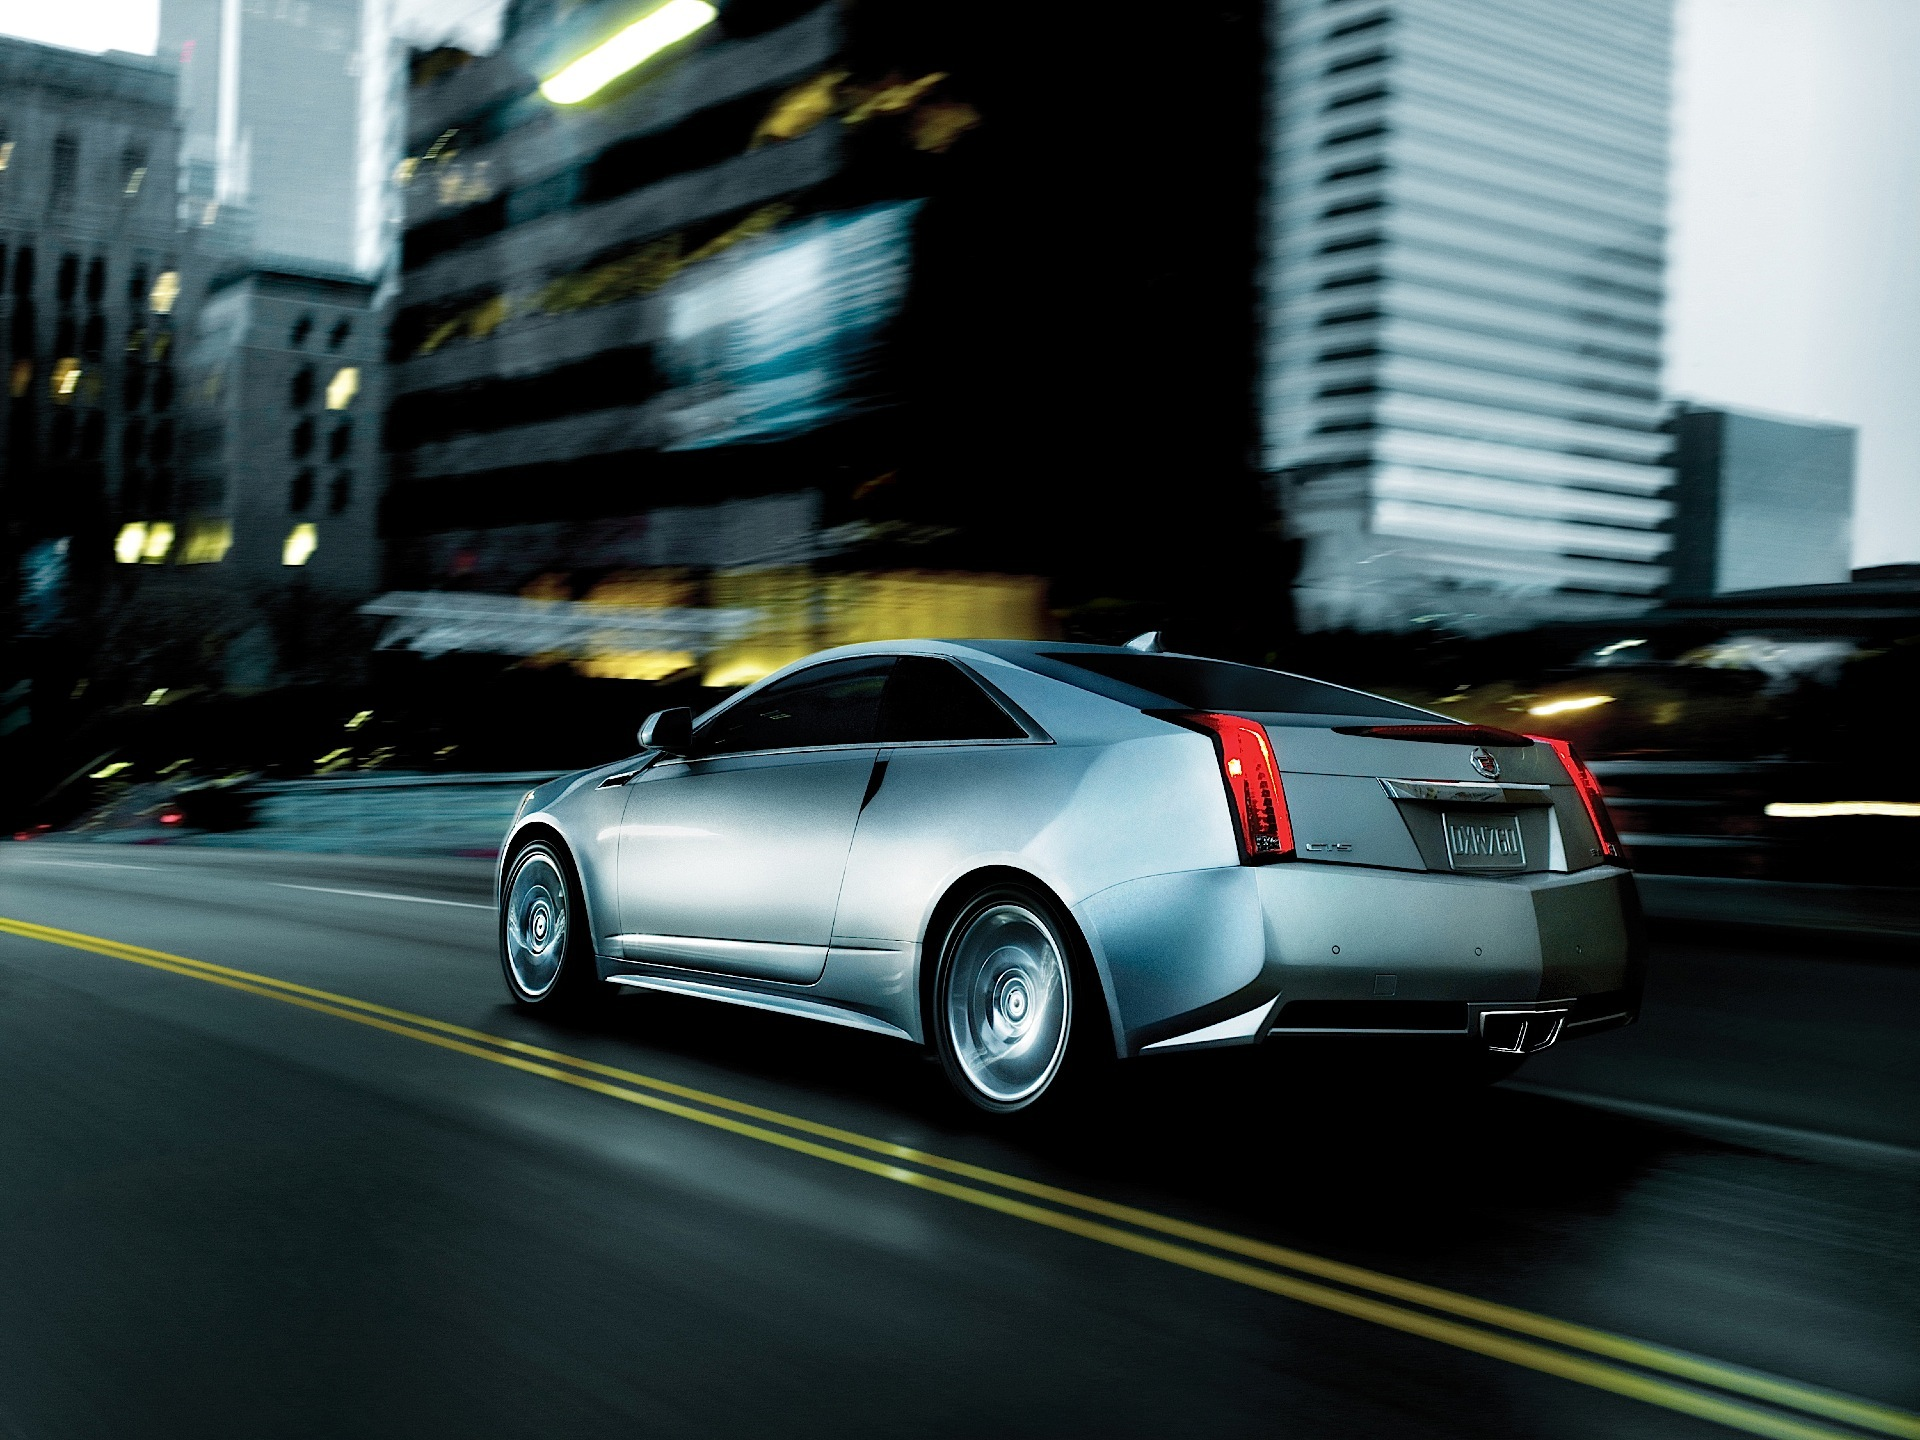 coupe edition strasse on v black diamond ctsv gtspirit wheels lowered cadillac cts